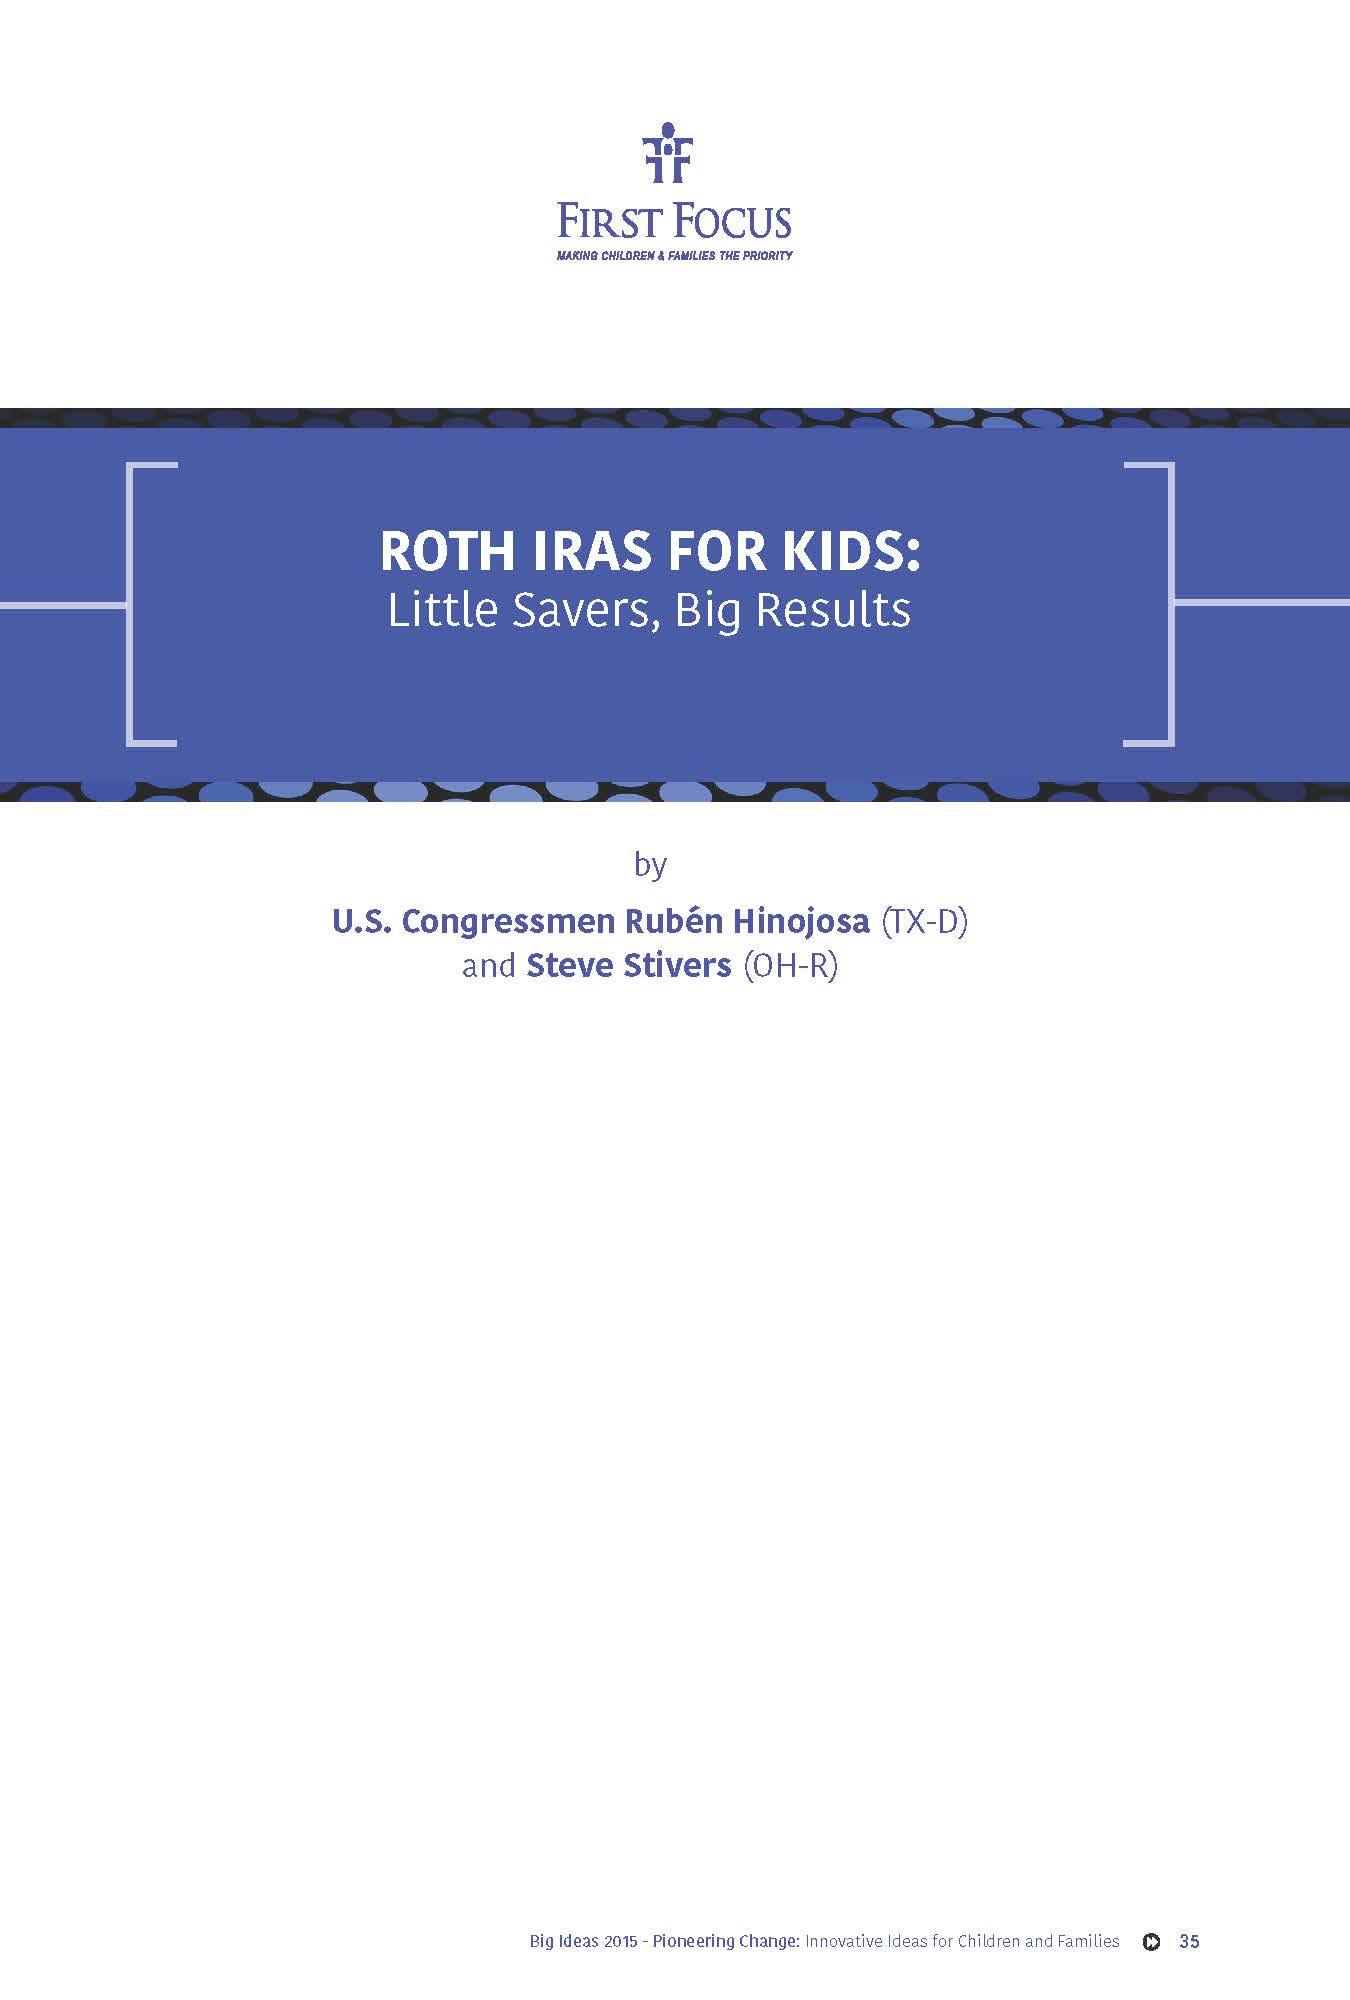 Roth IRAs for Kids: Little Savers, Big Results